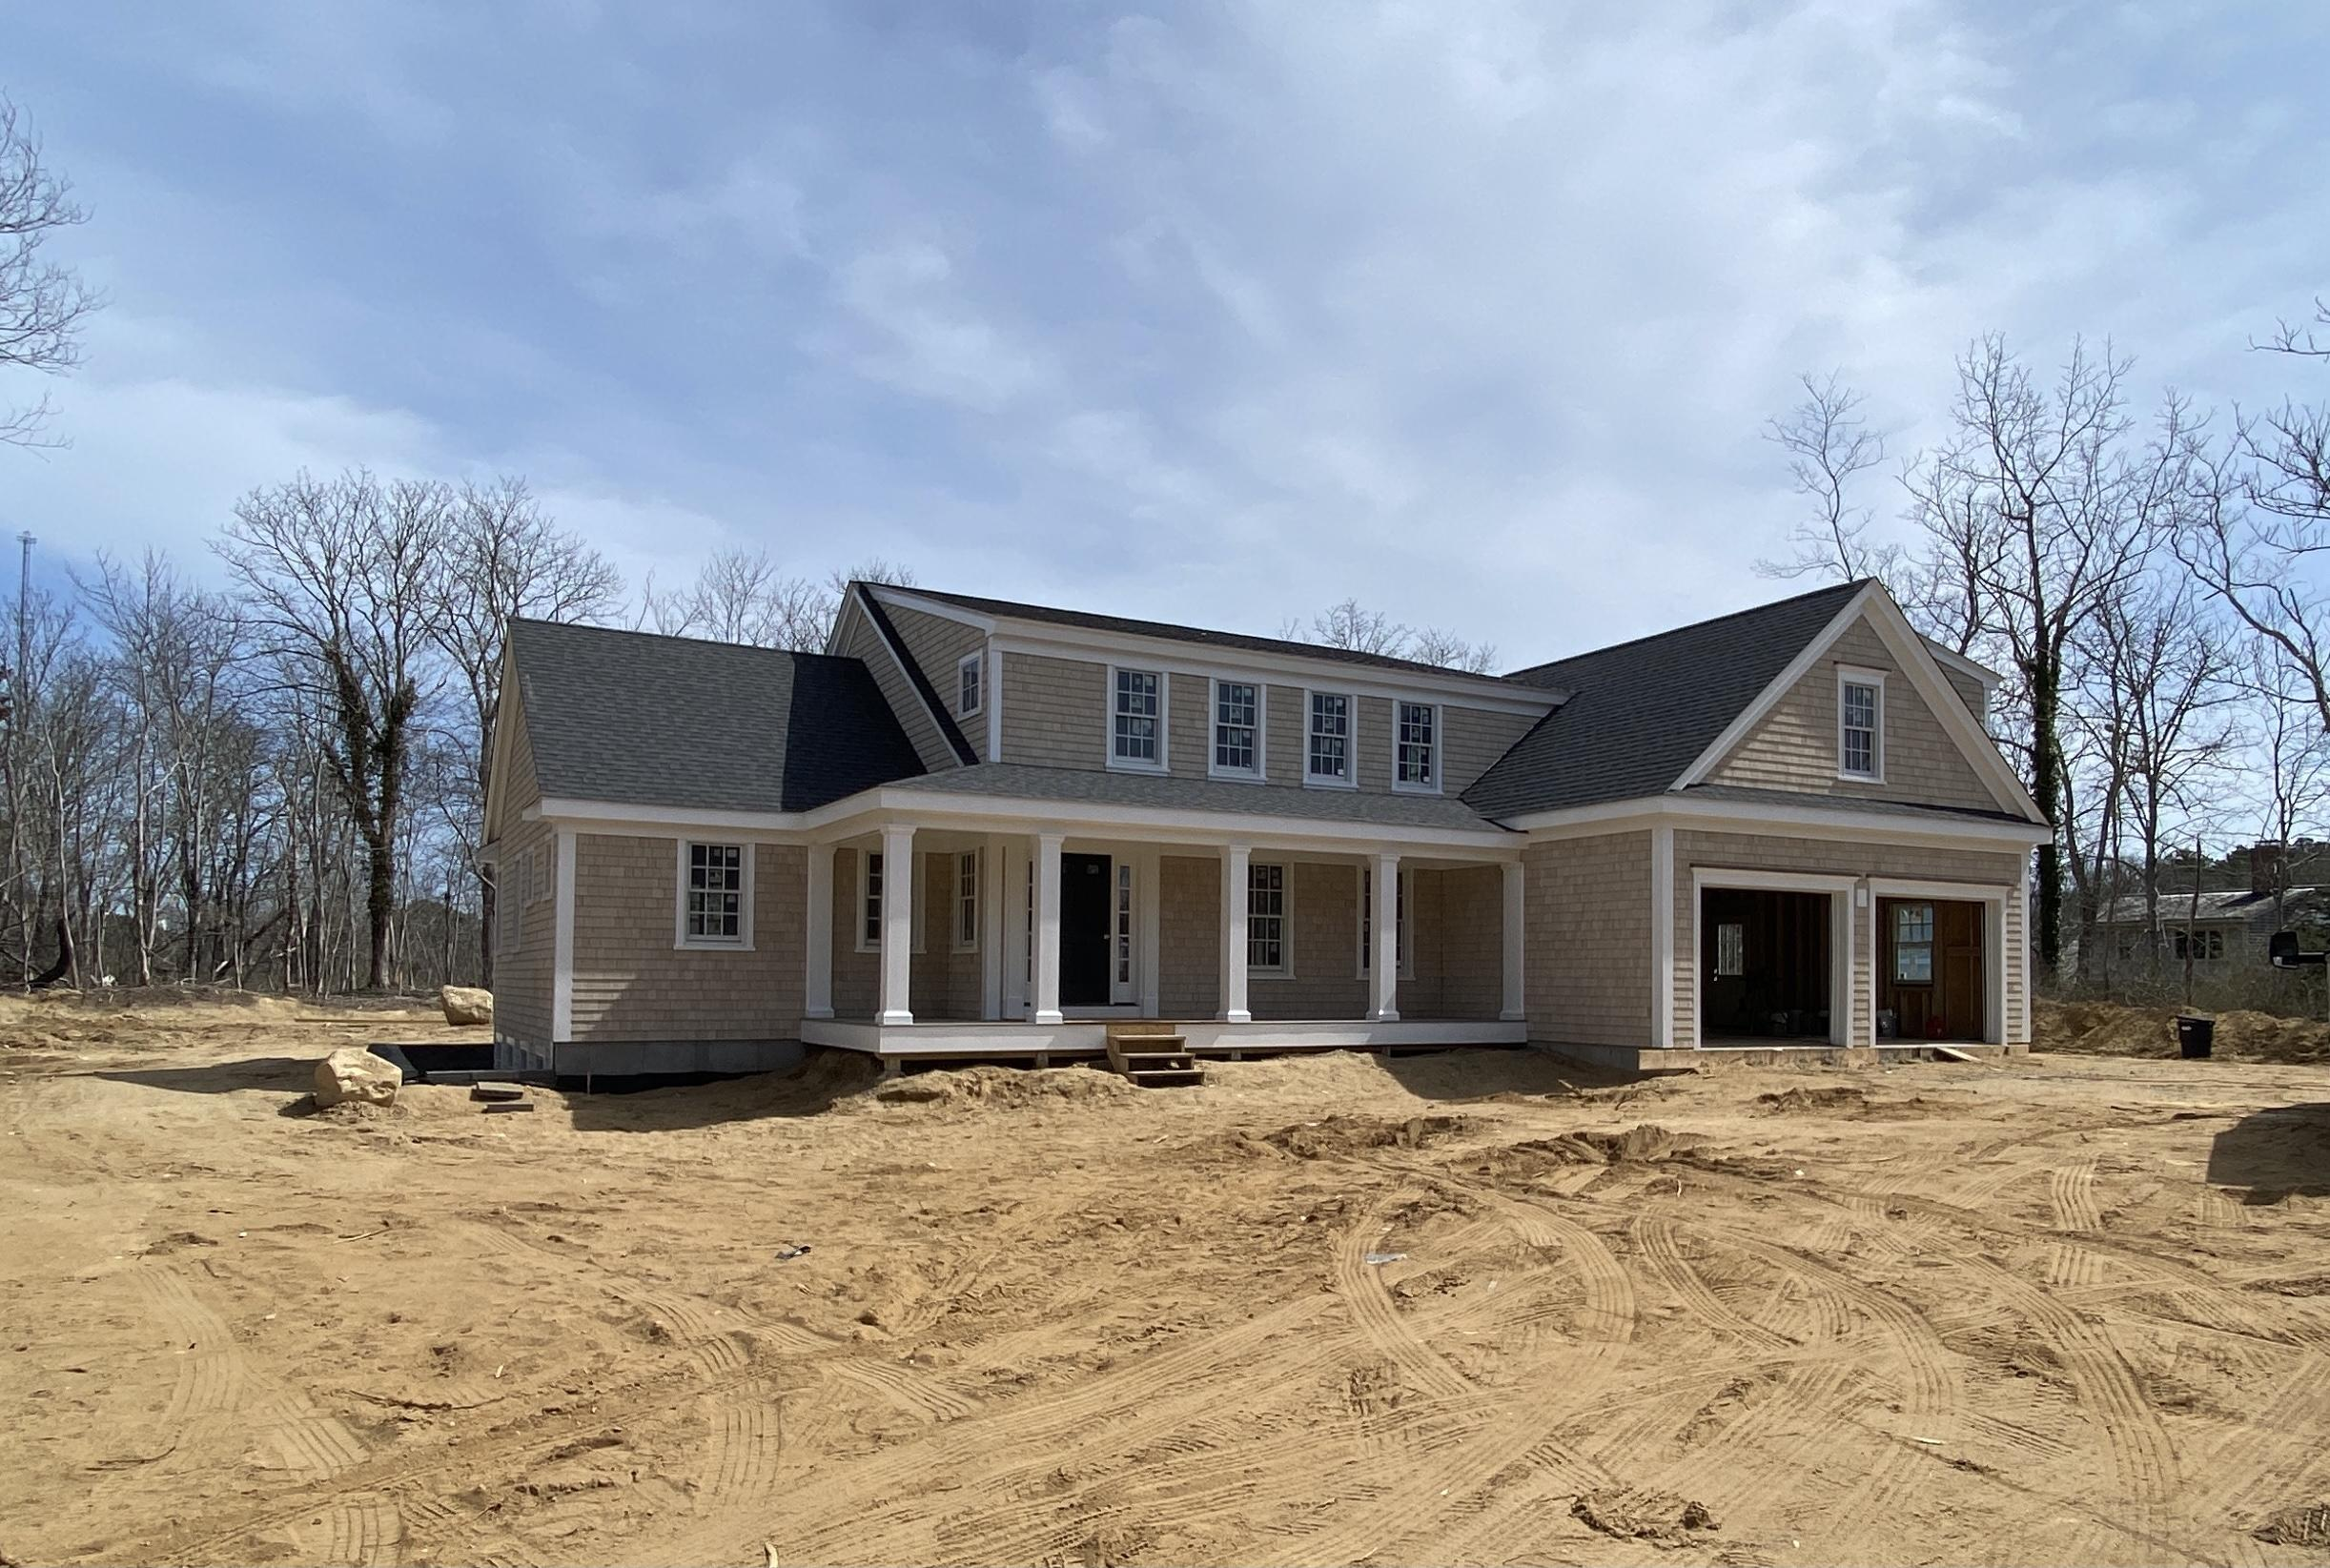 click to view more details 34 Loon Lane, Brewster, MA 02631